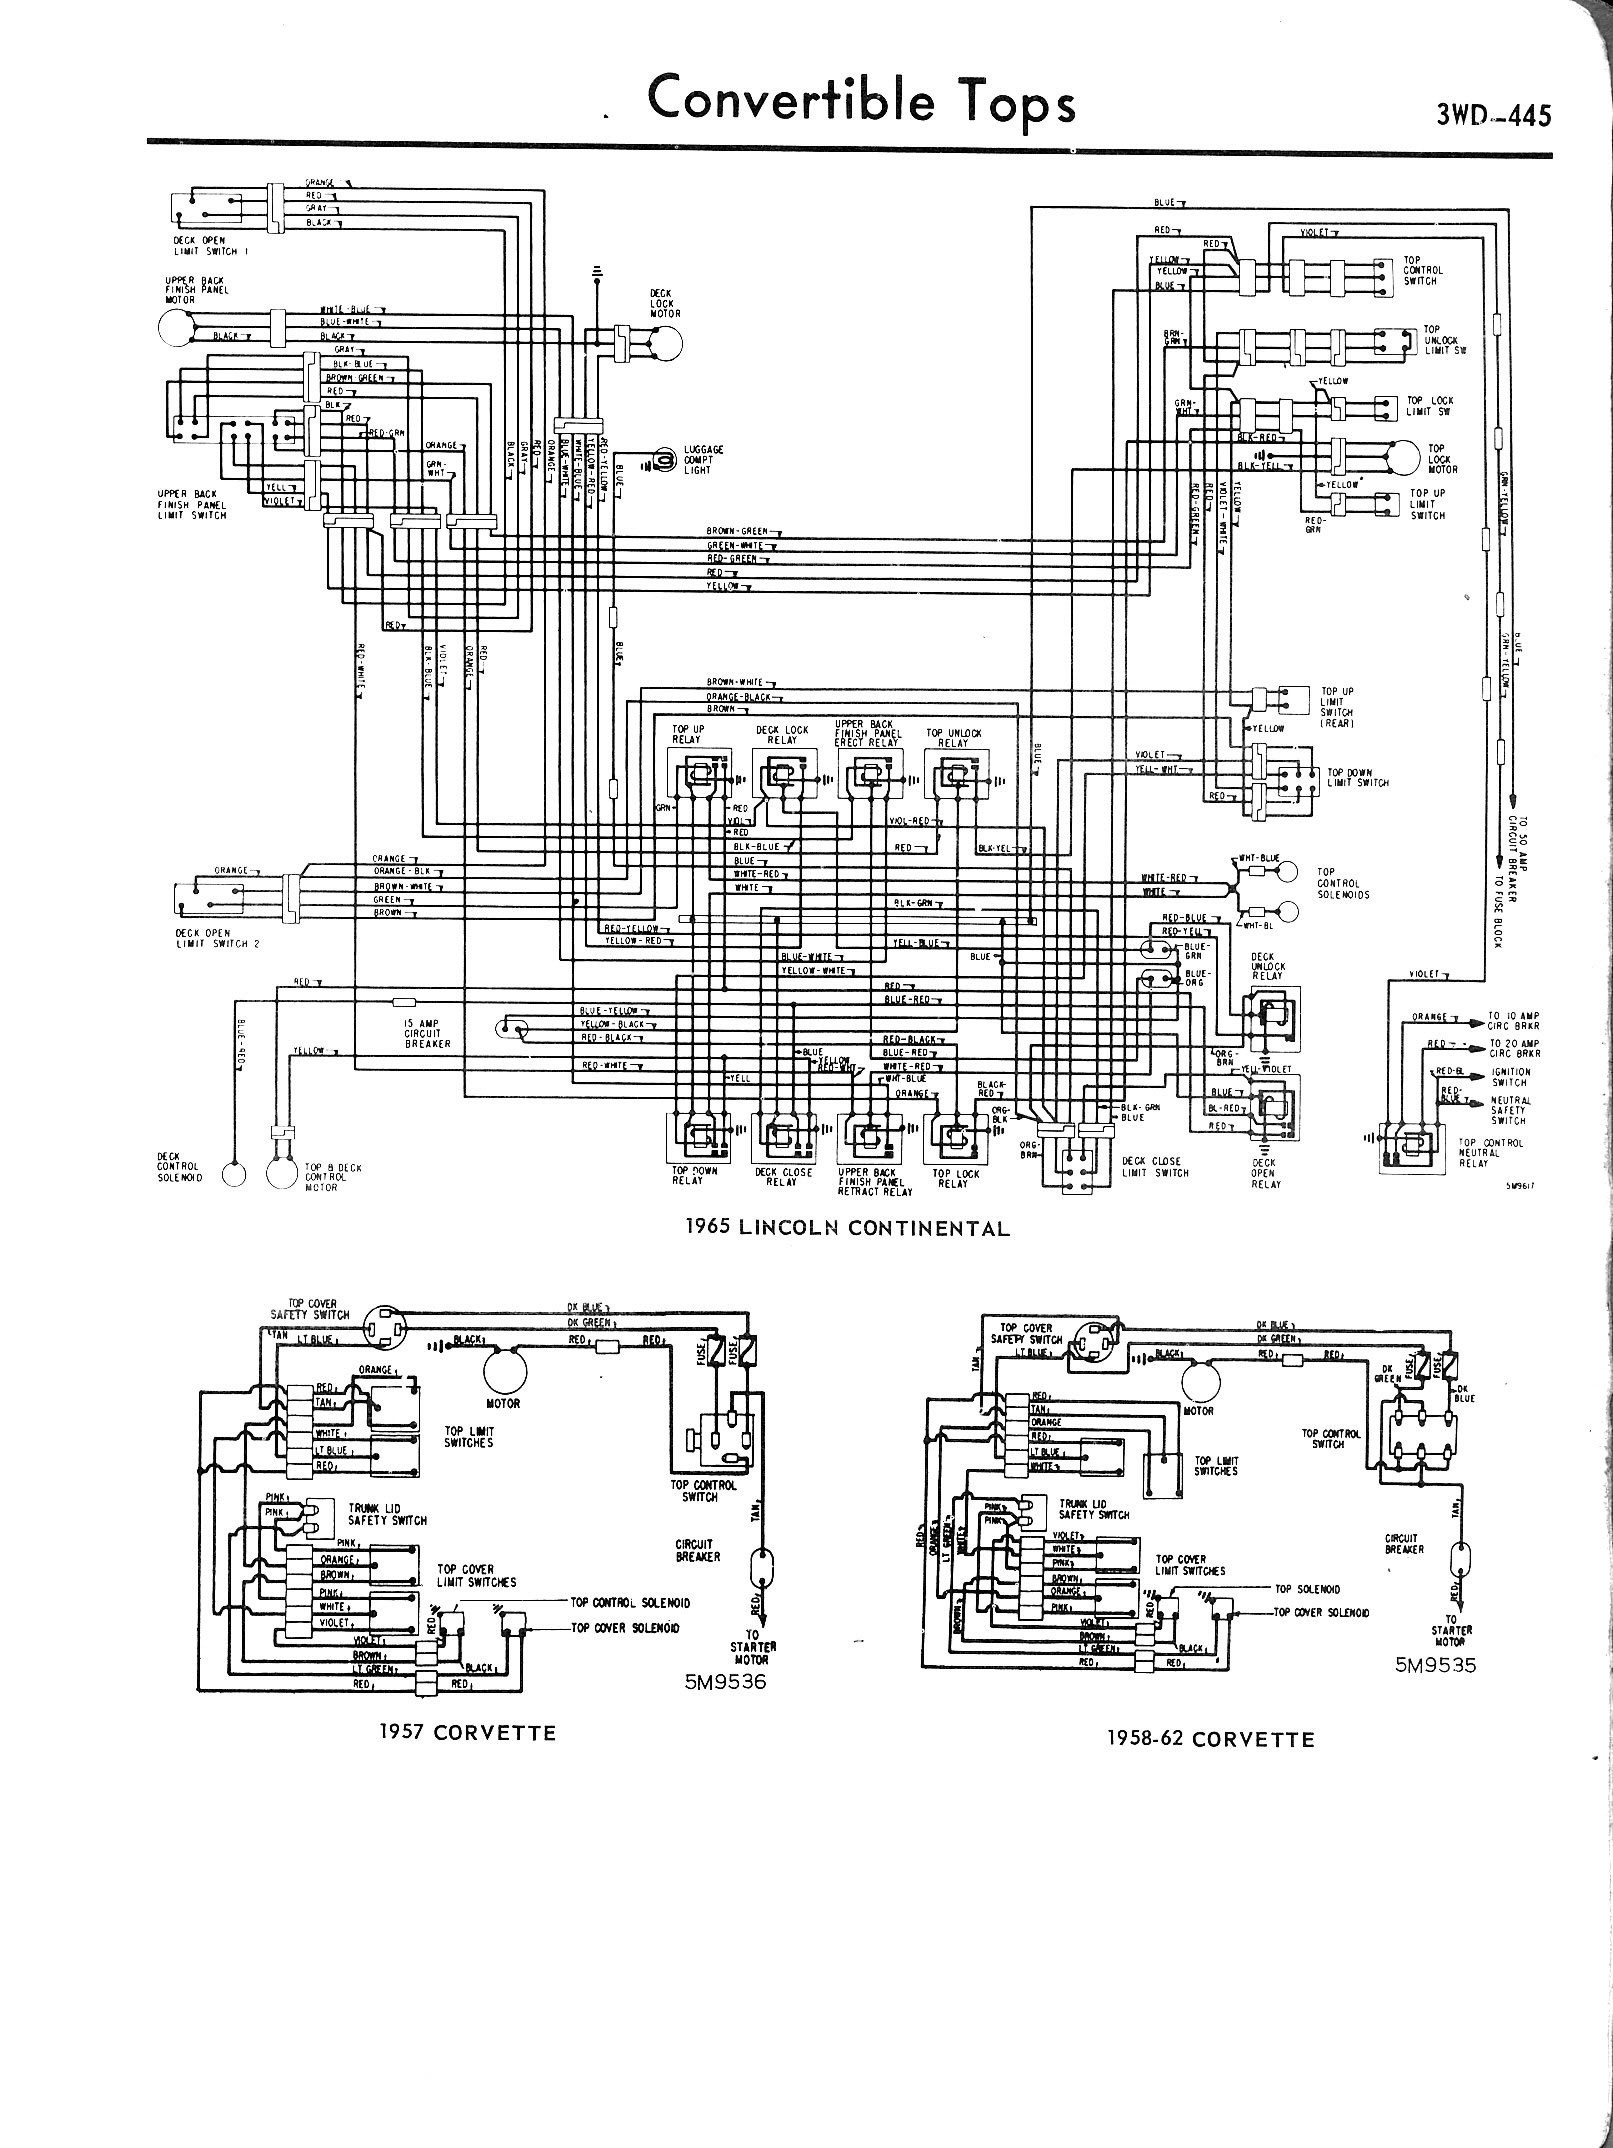 chevy truck wiring harness diagram 57 convertible wiring harness-conv top - trifive.com, 1955 ... 1957 chevy truck wiring harness diagram free #10